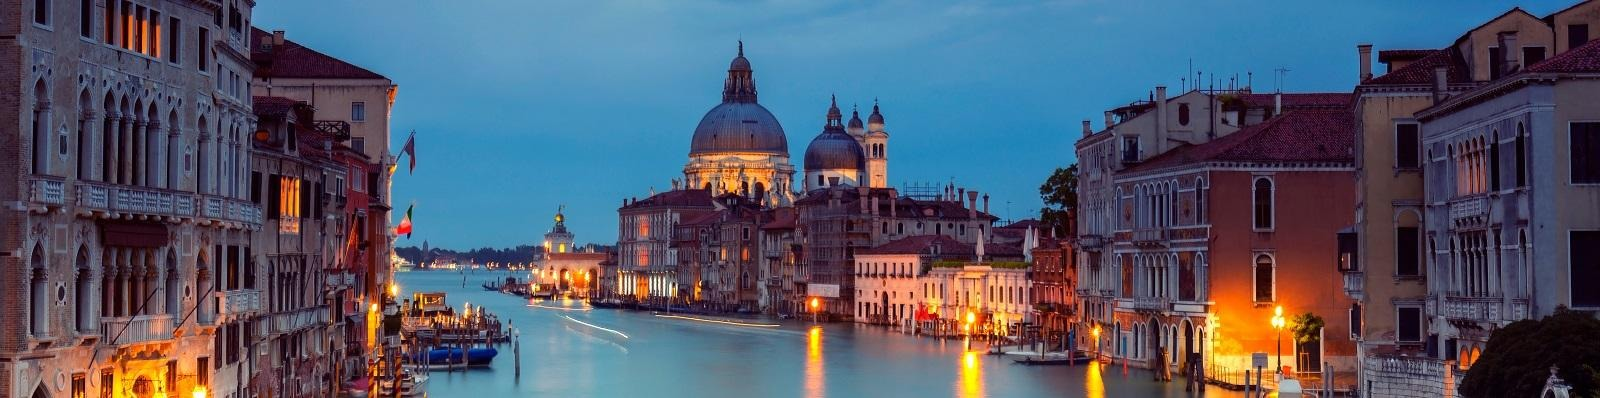 Things to Do in Venice This Fall